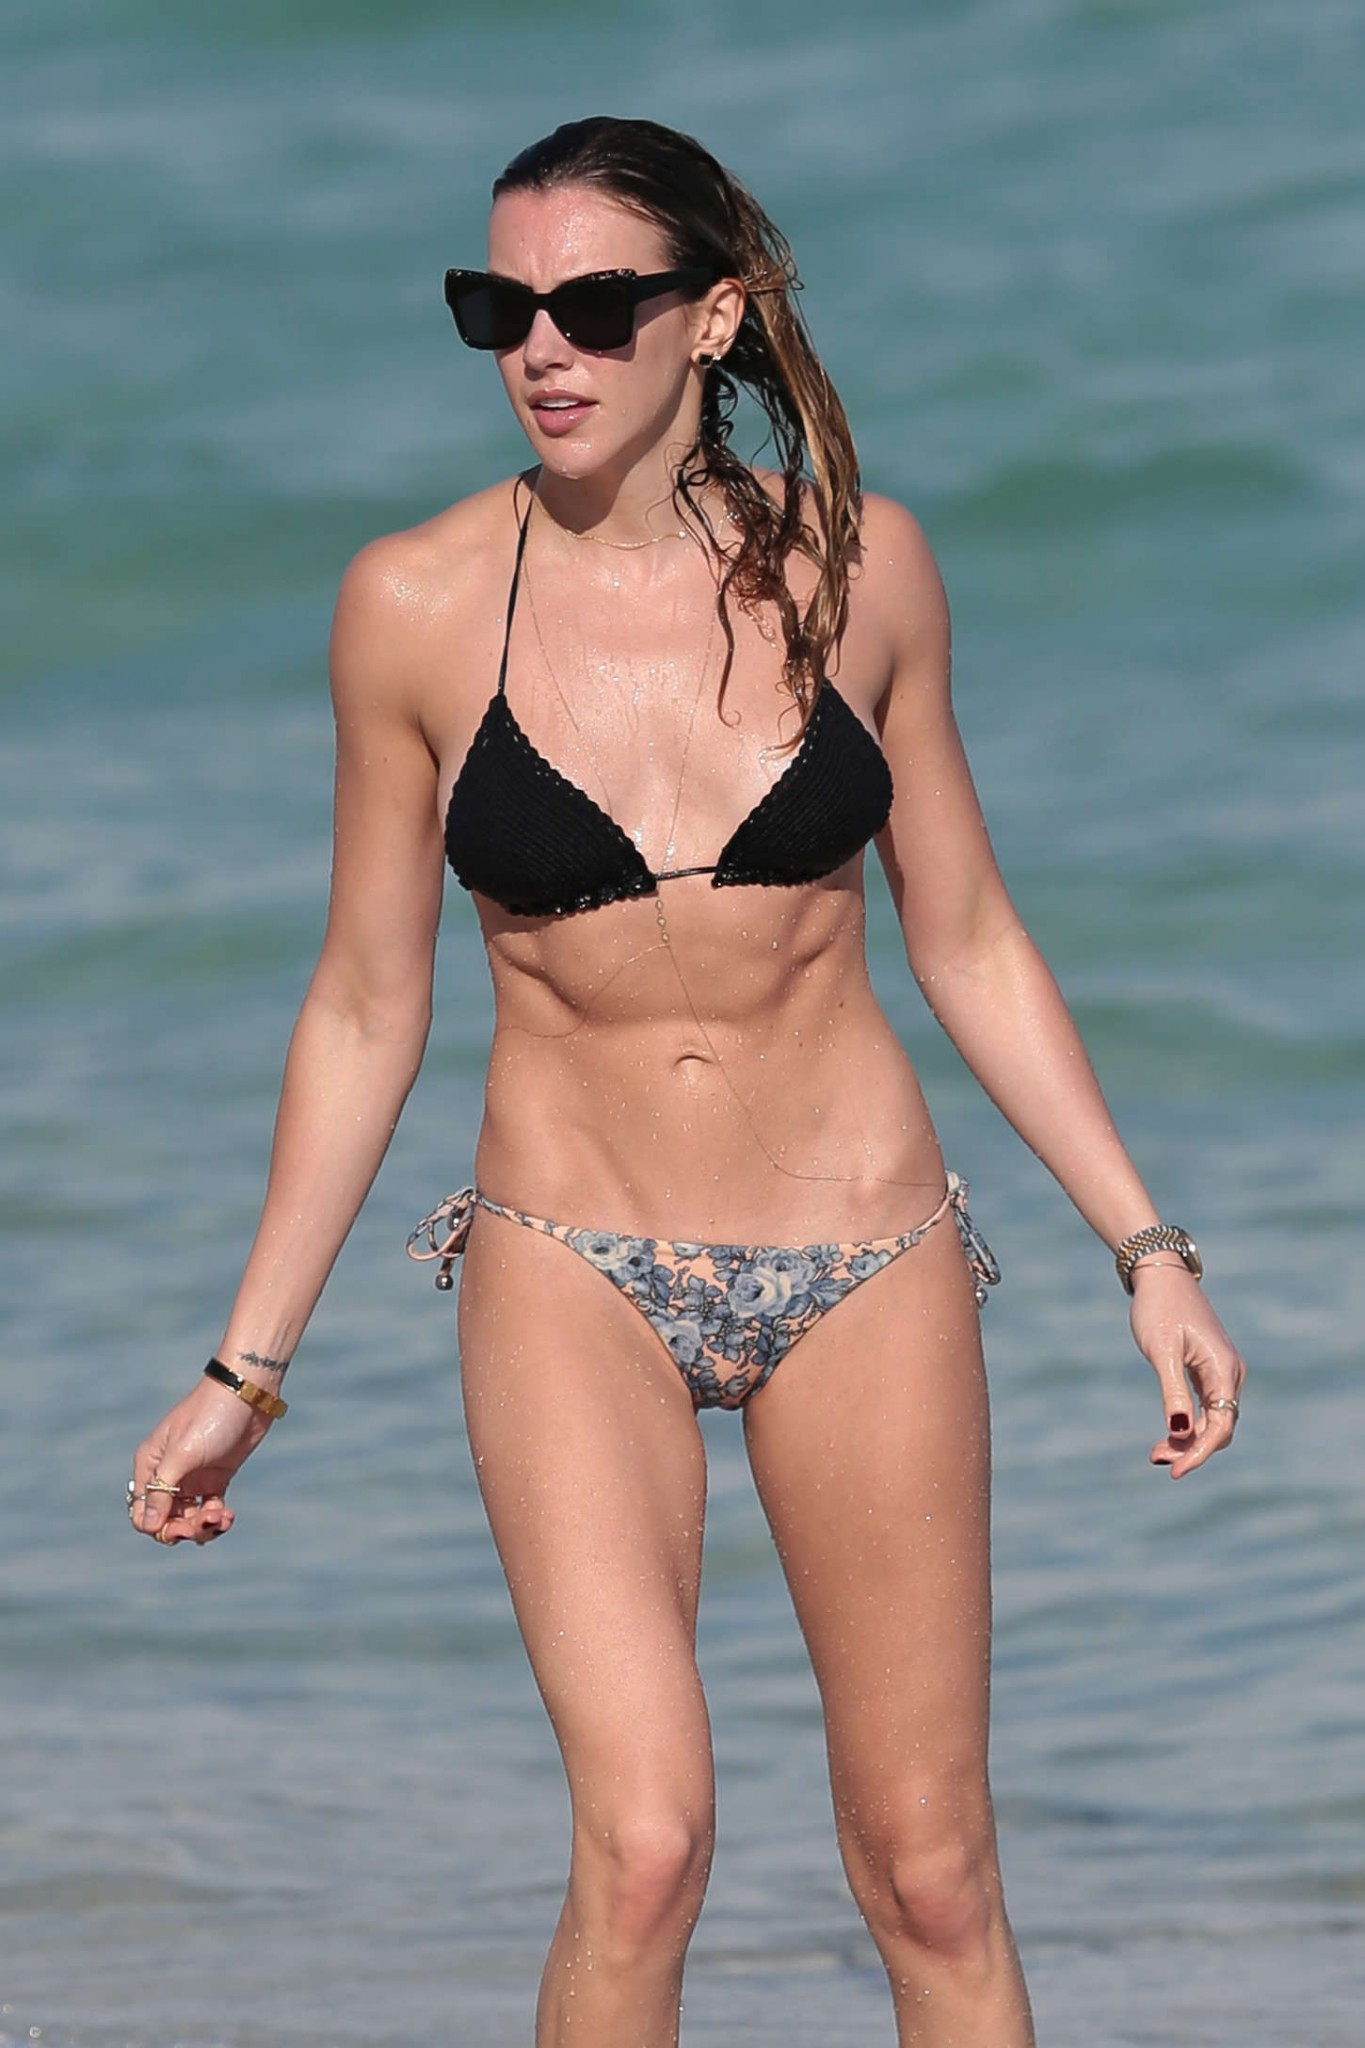 katie-cassidy-in-bikini-at-the-beach-in-miami-8.jpg